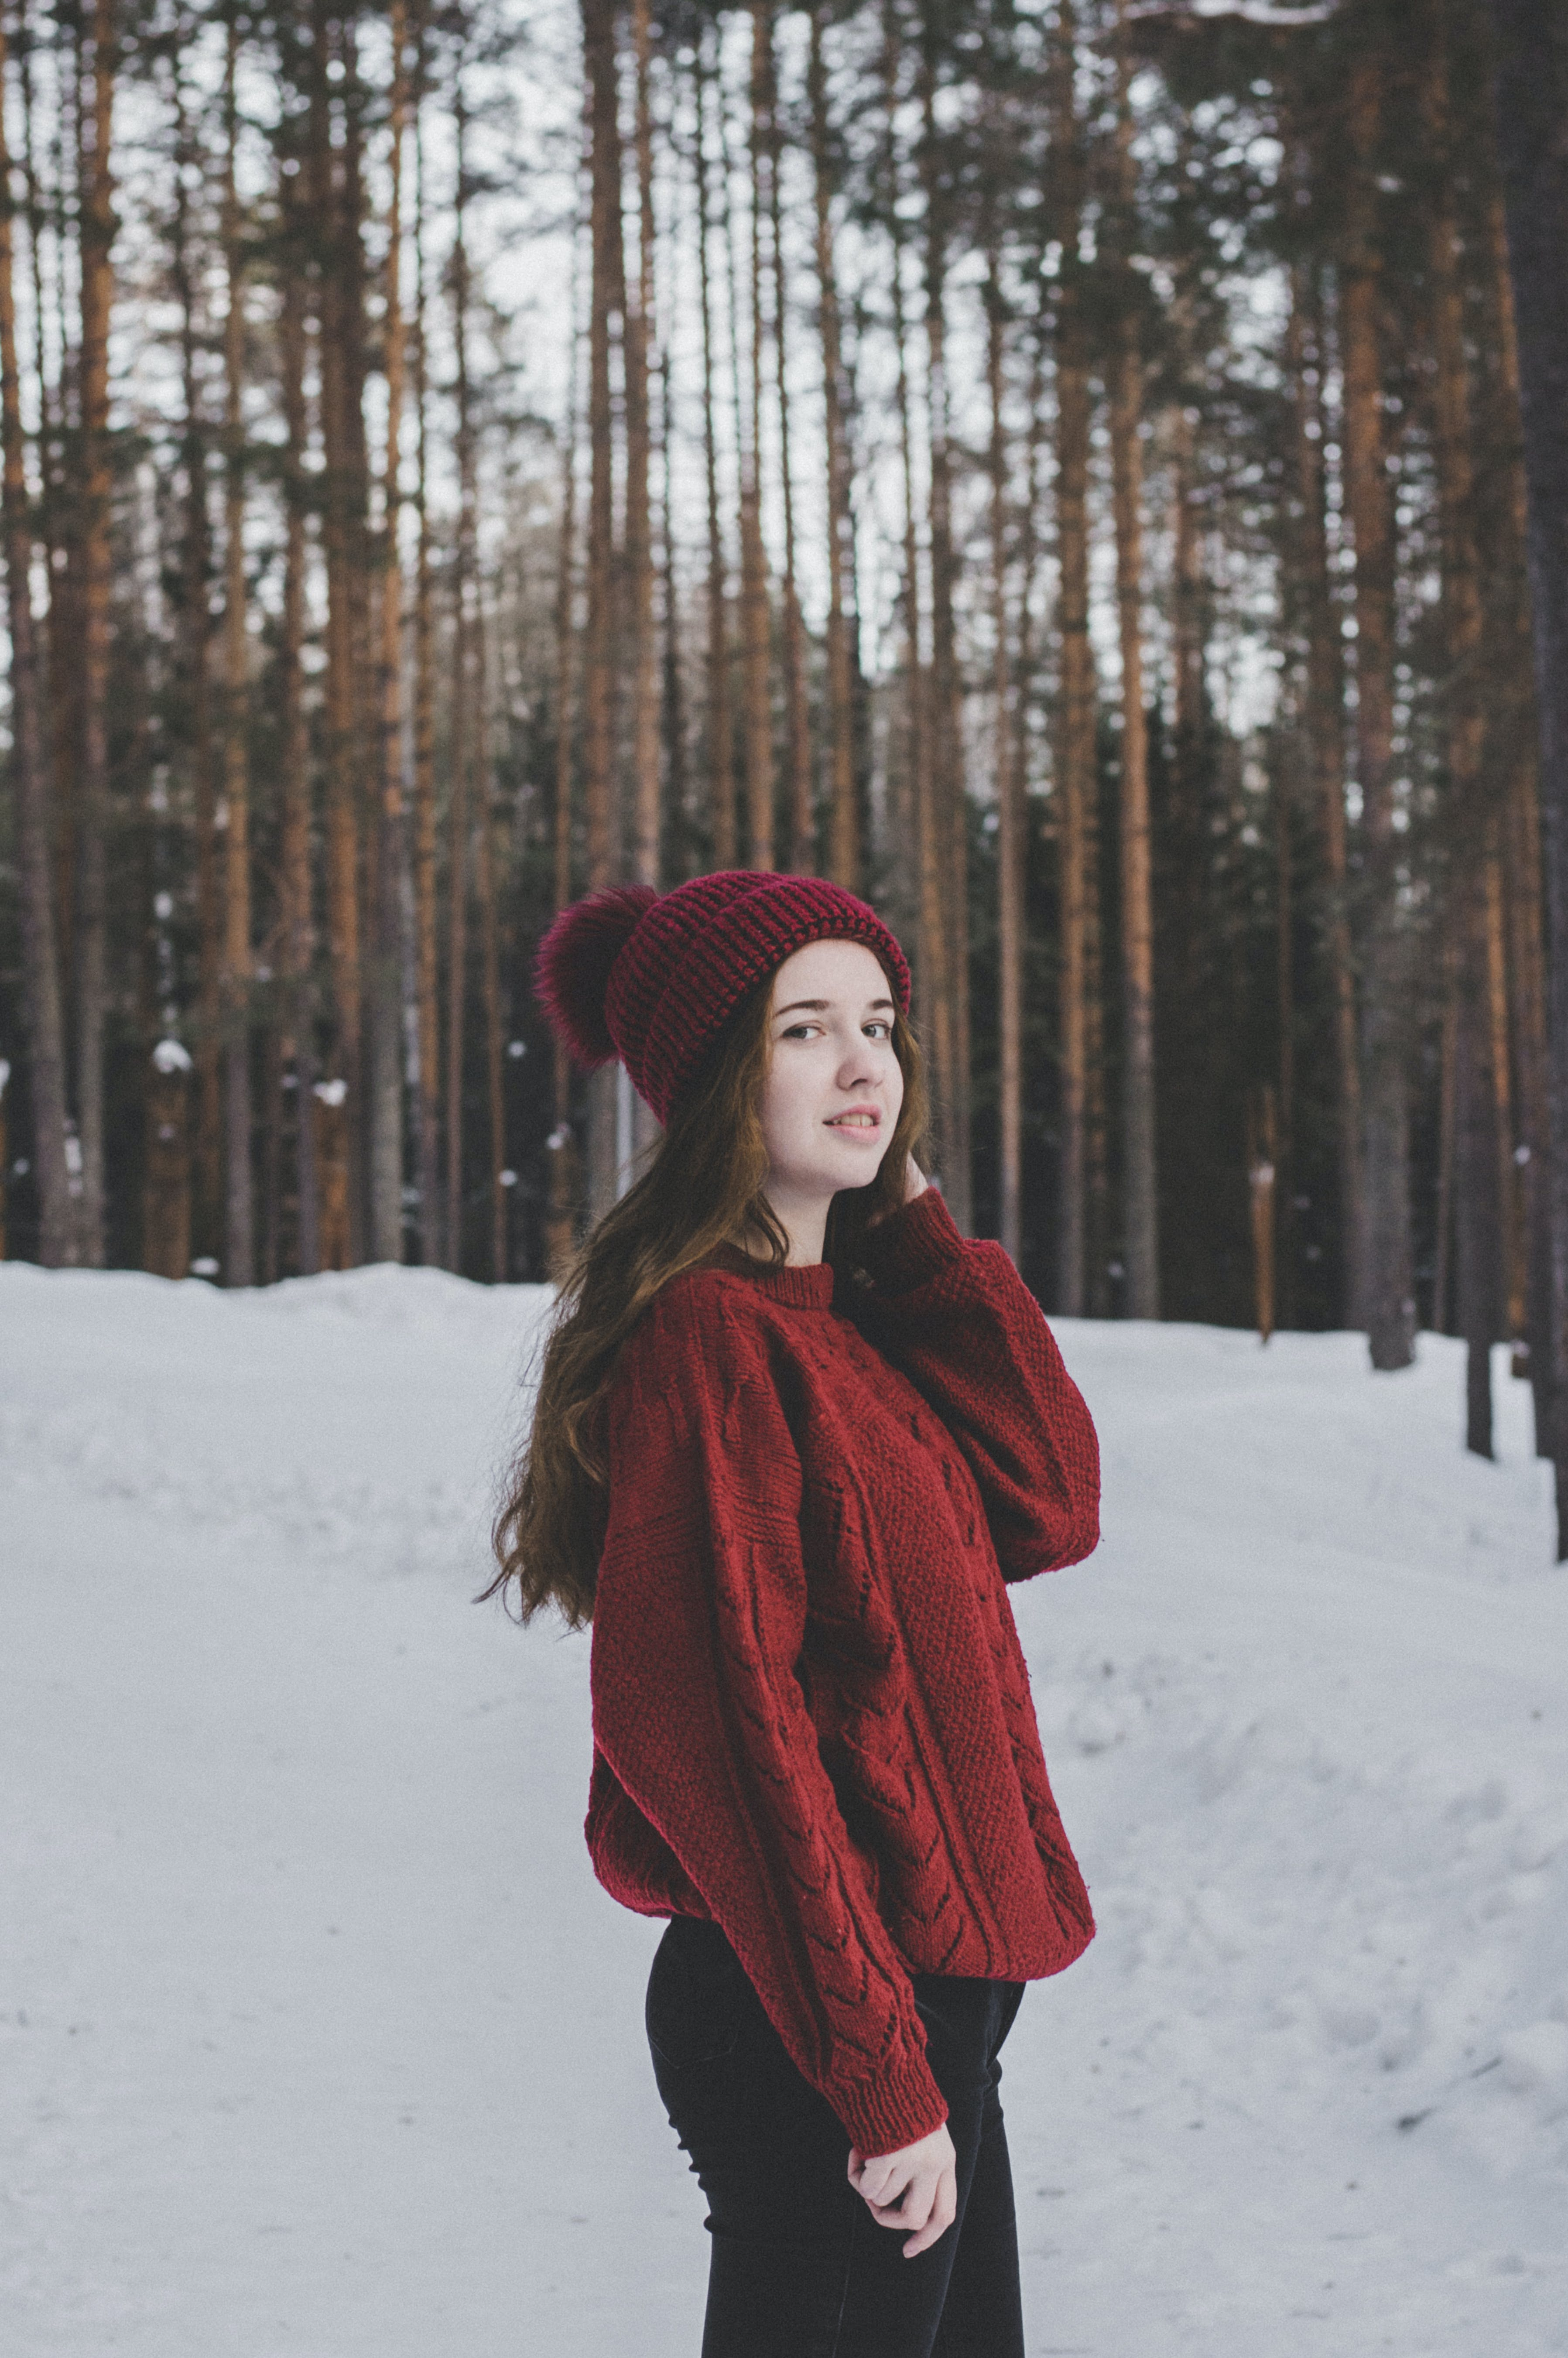 Woman Wearing Red Sweater and Red Beanie Under Forest